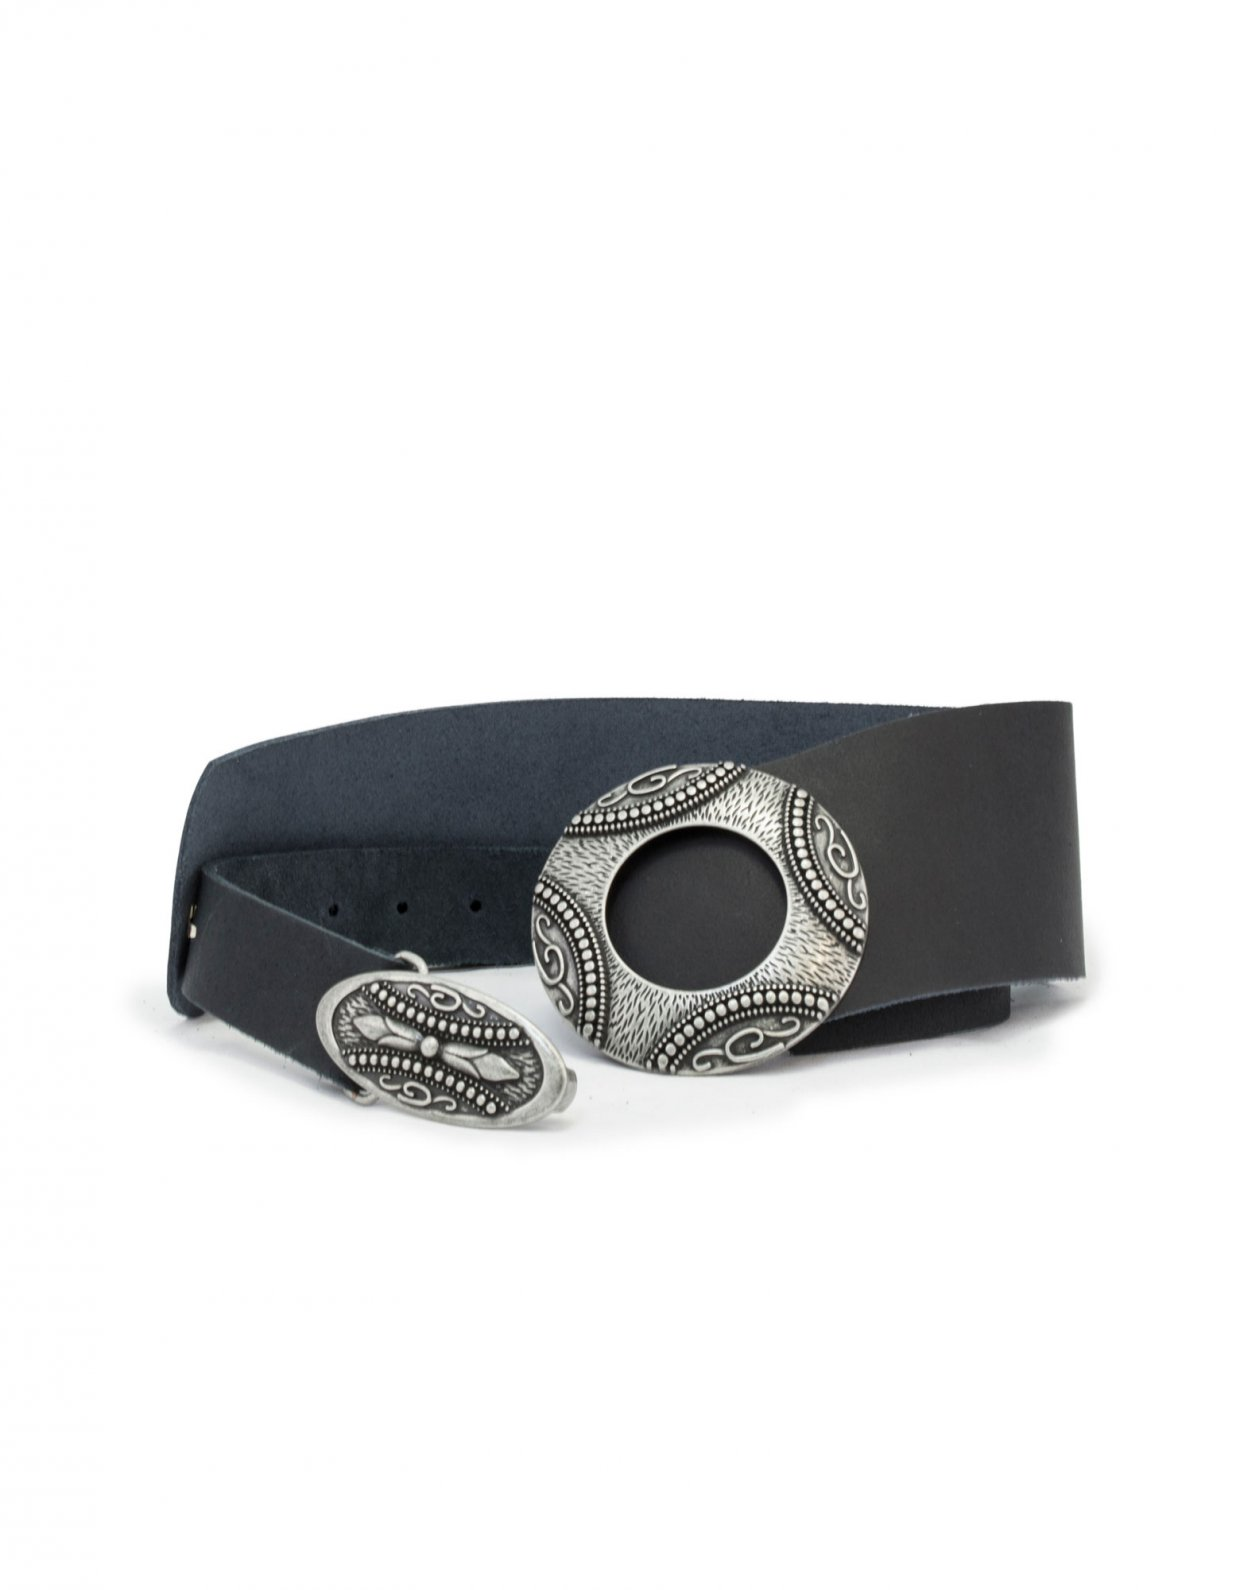 Individual Art Leather Supreme black/silver belt